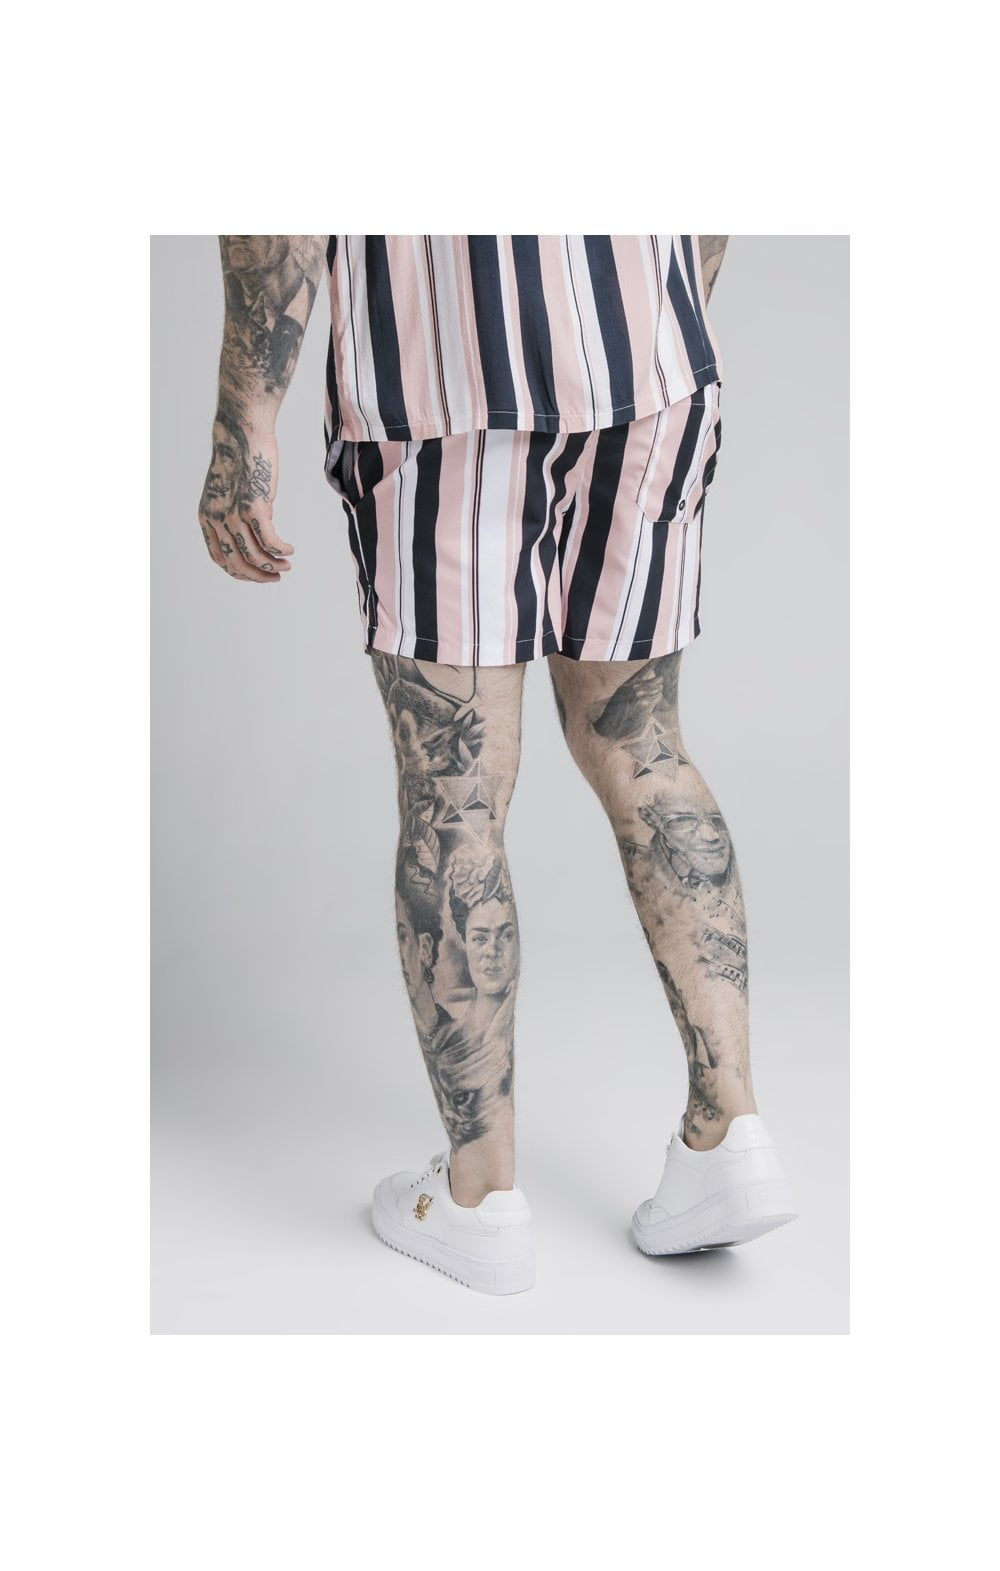 SikSilk Standard Swim Shorts – Navy, Pink & White (6)